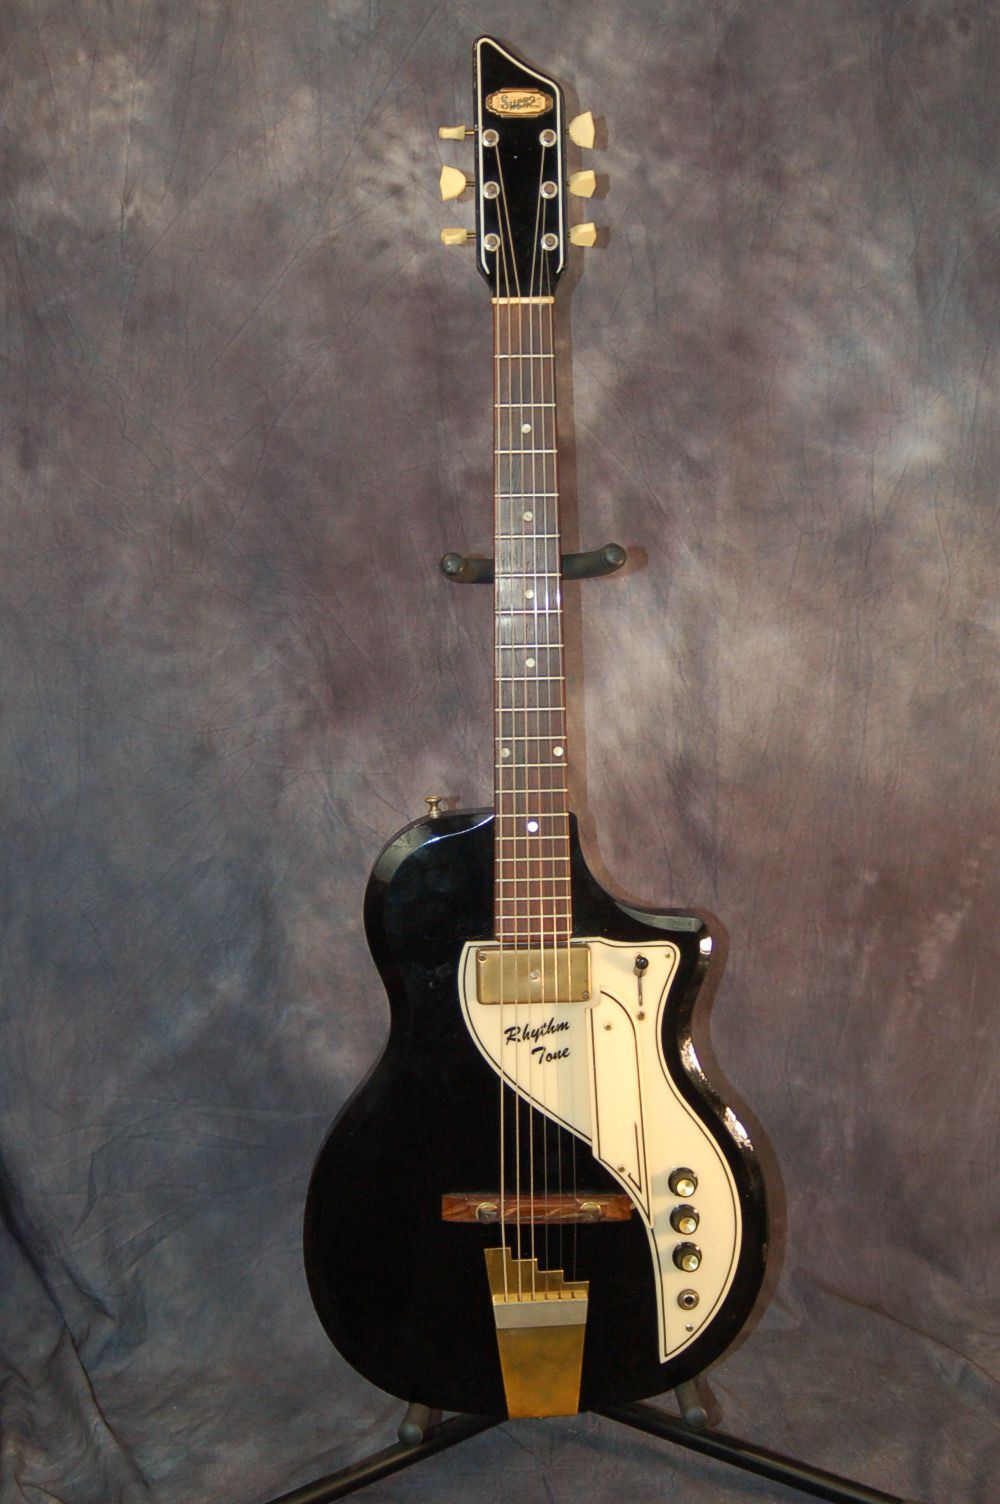 1958 supro rhythm tone guitar for sale in my ebay store give me a call 515 864 6136 cool. Black Bedroom Furniture Sets. Home Design Ideas